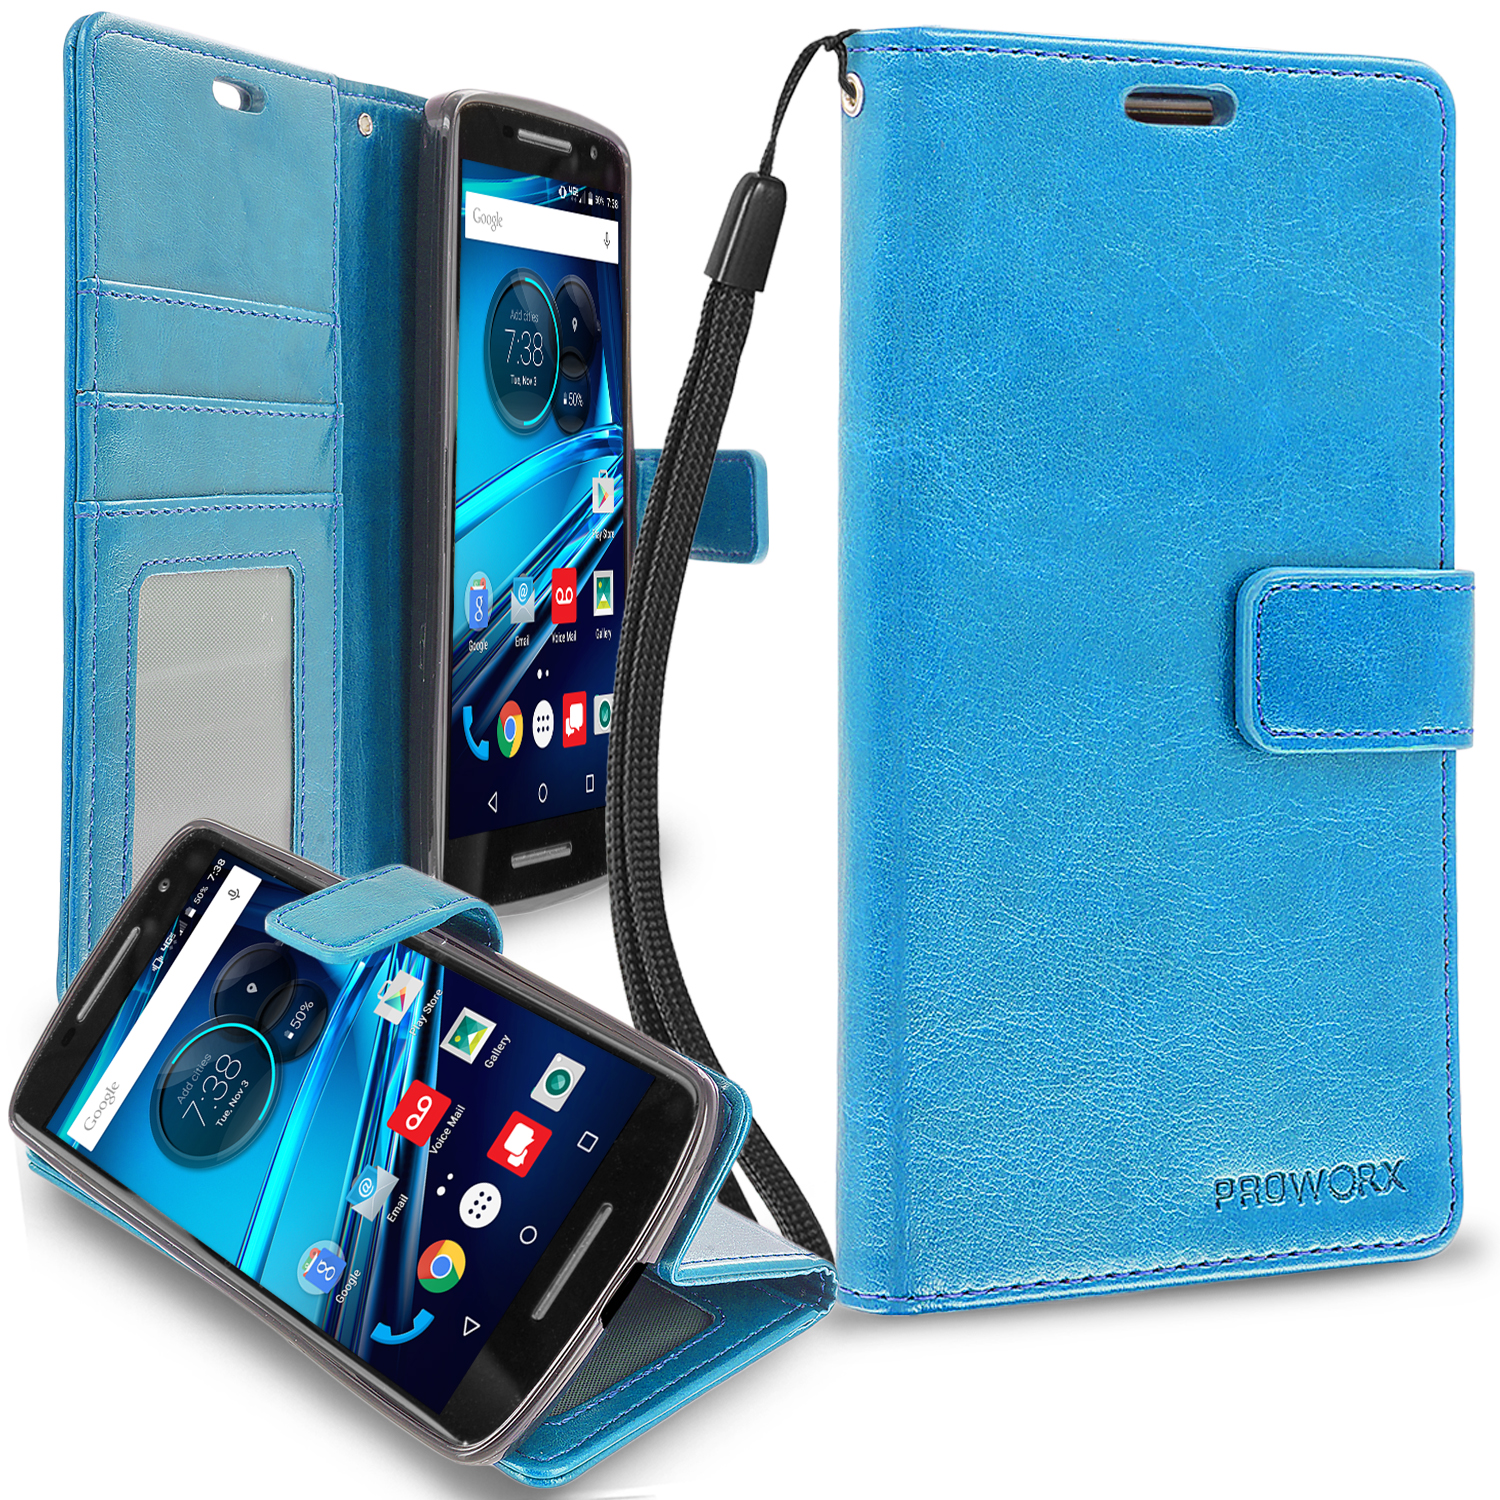 Motorola Droid Maxx 2 XT1565 Baby Blue ProWorx Wallet Case Luxury PU Leather Case Cover With Card Slots & Stand